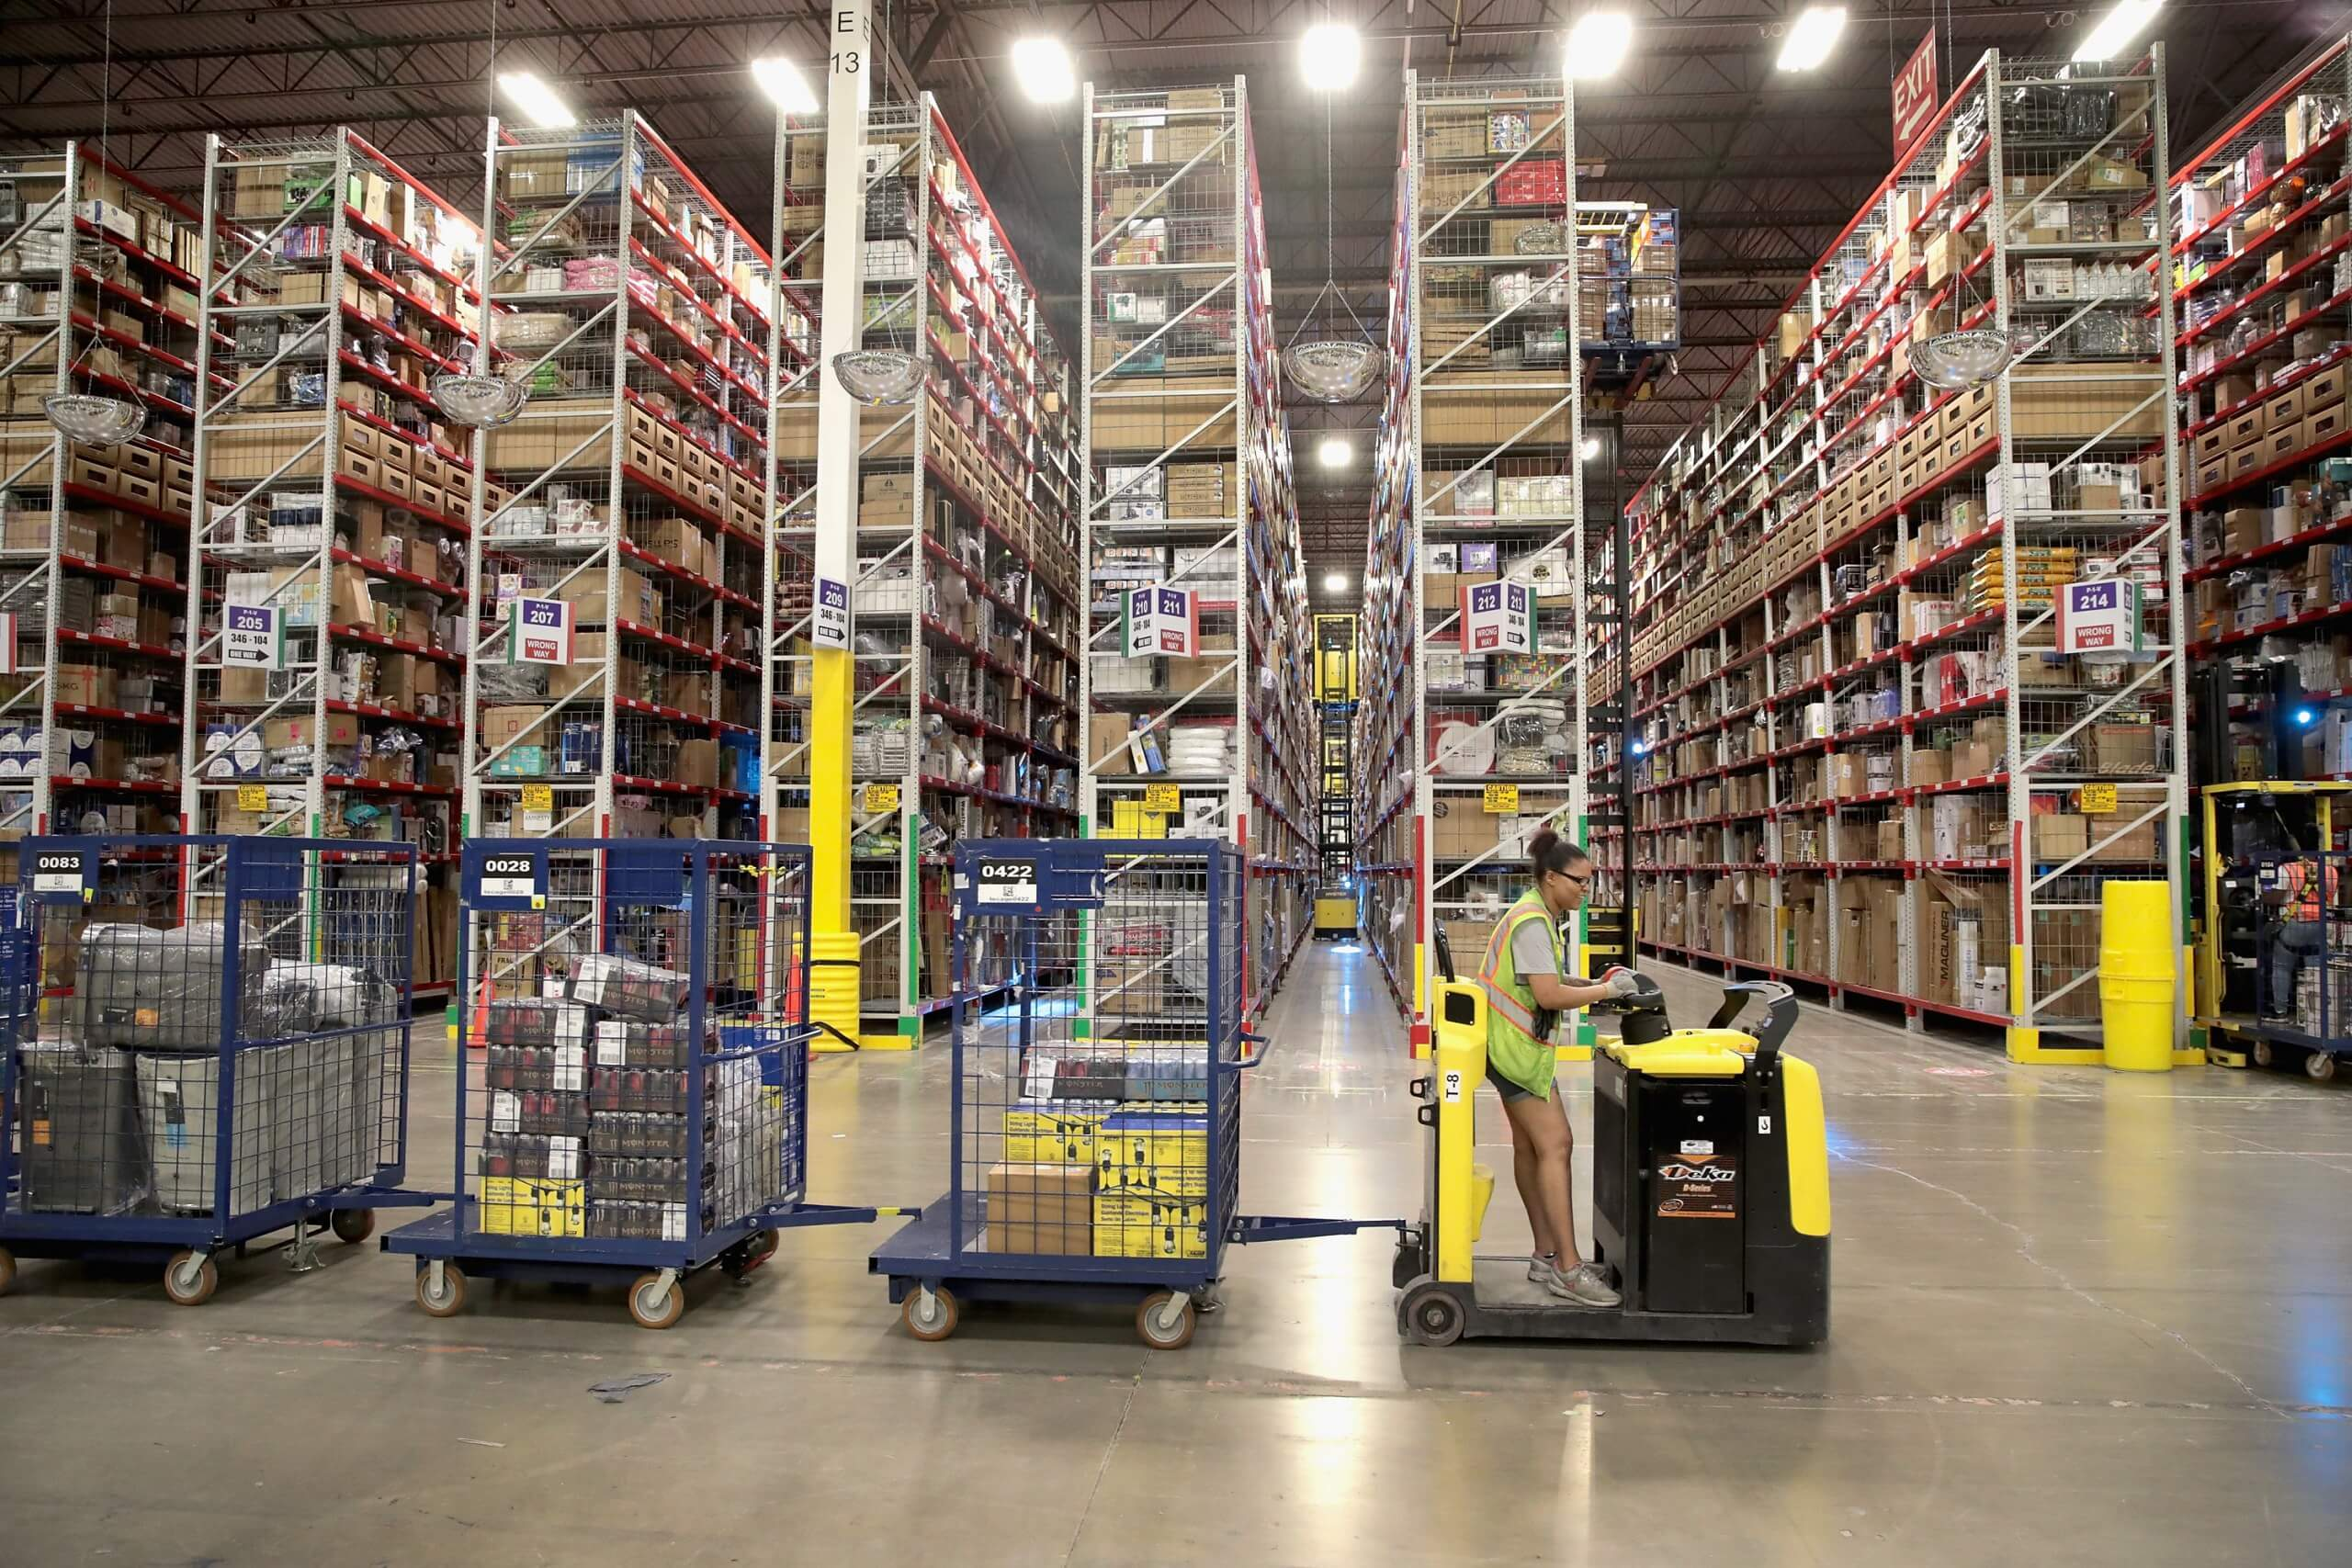 Amazon warehouse robot sends 24 human employees to hospital